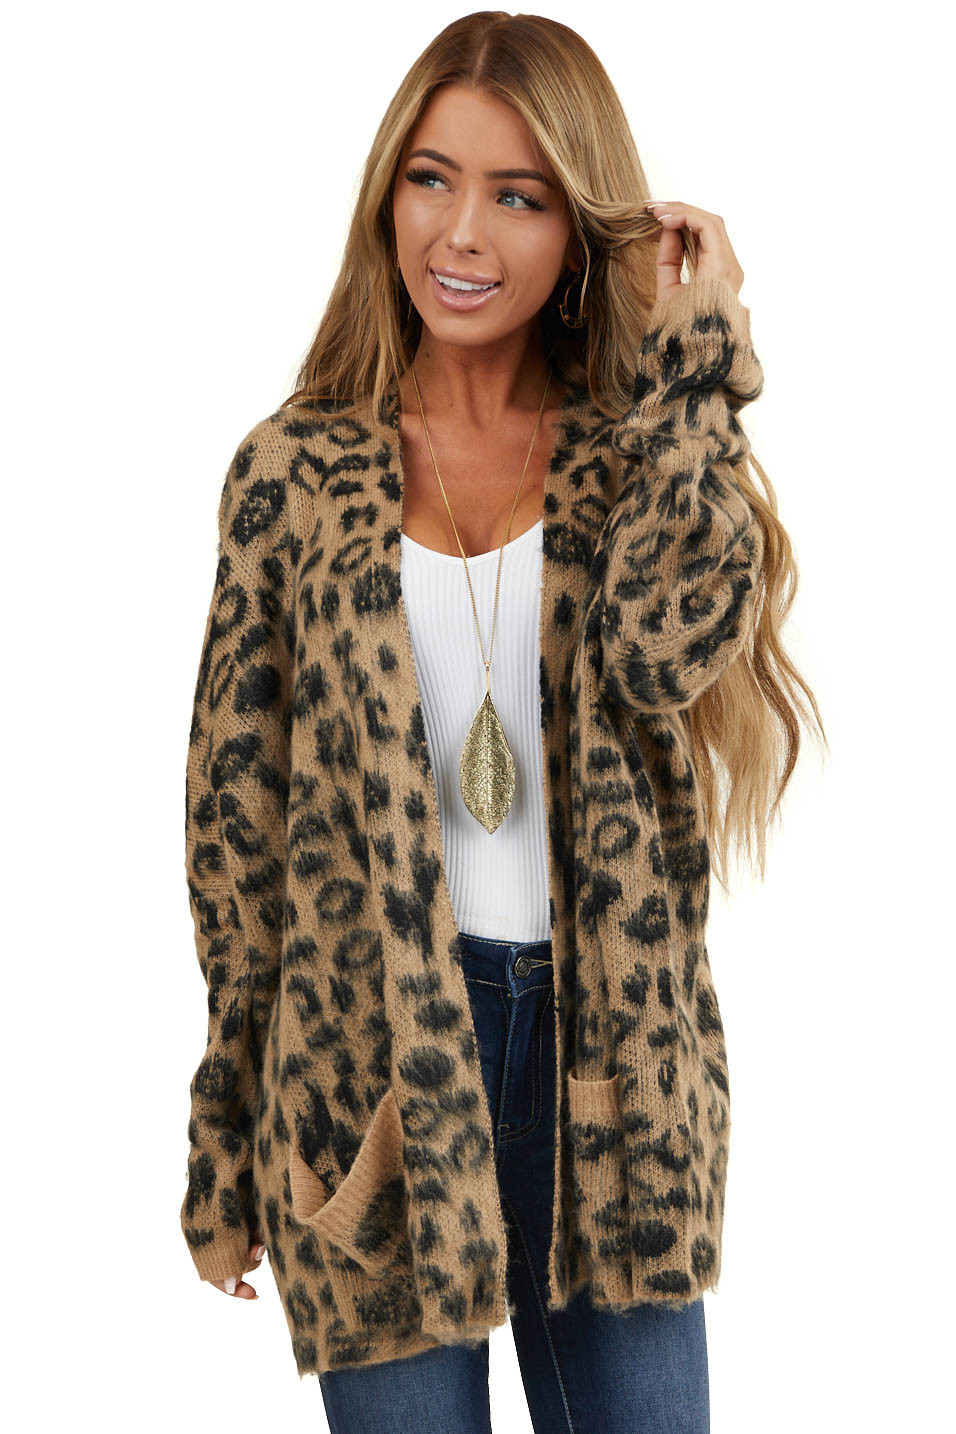 Latte Leopard Print Soft Knit Cardigan with Pockets